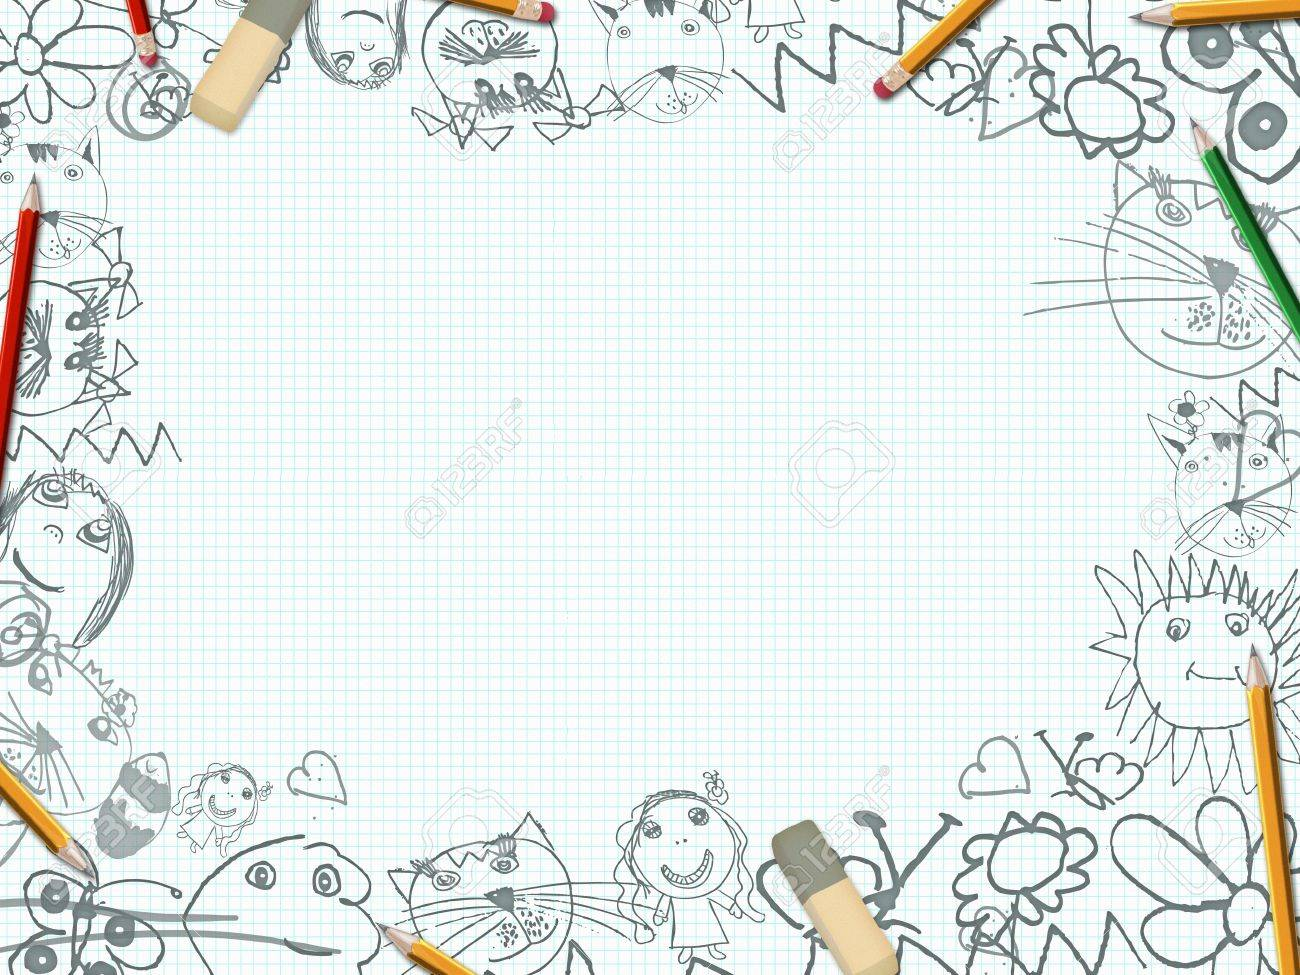 Childrens pencil drawings school desk background stock photo 27906935